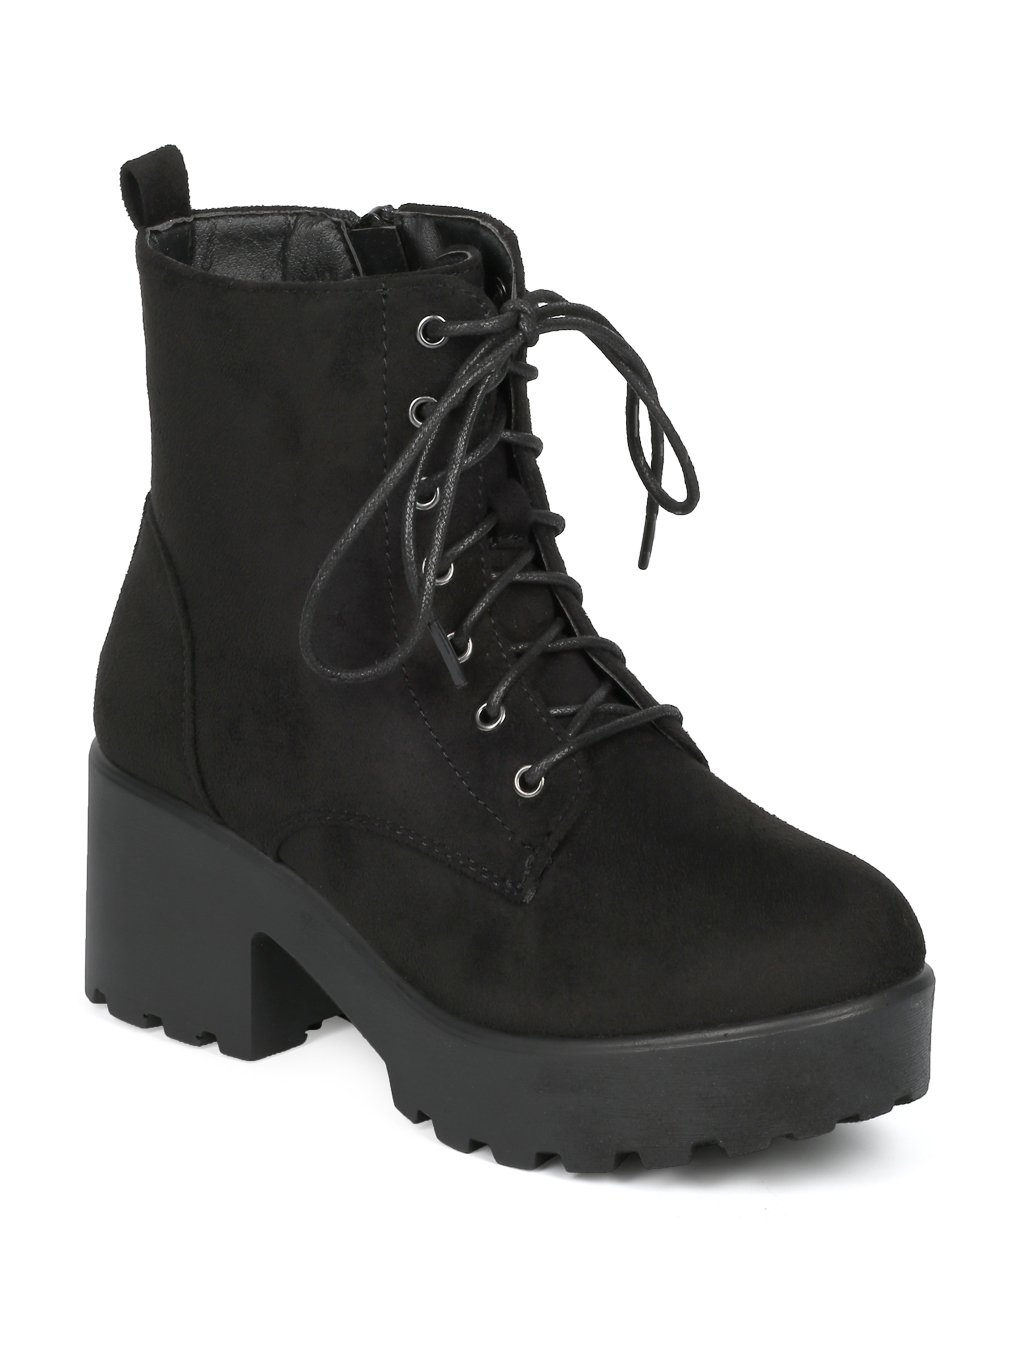 Indulge Mode-05 Women Faux Suede Lace Up Platform Lug Sole Block Heel Ankle Boot HE16 - Black Faux Suede (Size: 9.0)